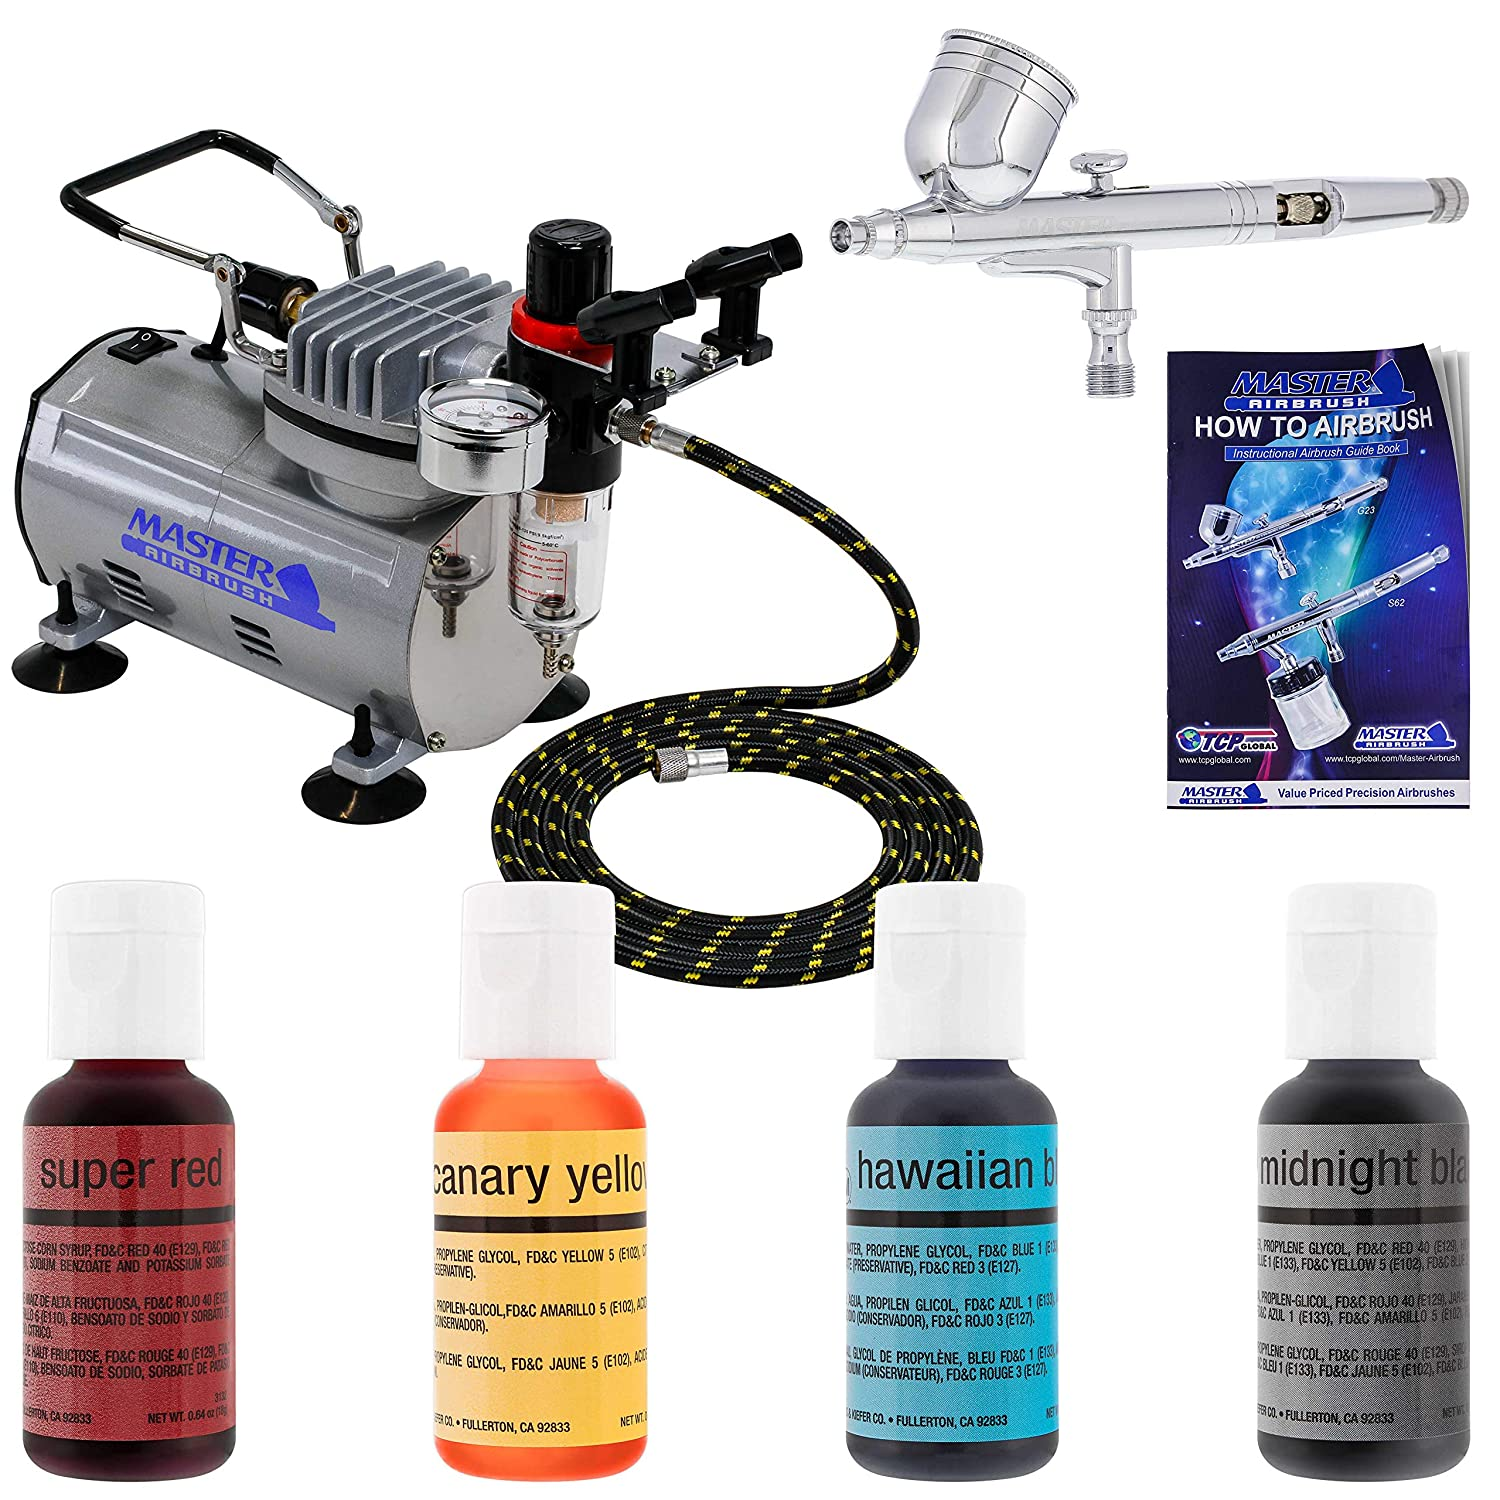 Pro Master Airbrush Cake Decorating Airbrushing System Kit with a 4 Color  Chefmaster Food Coloring Set - G22 Gravity Feed Airbrush, Air Compressor,  ...